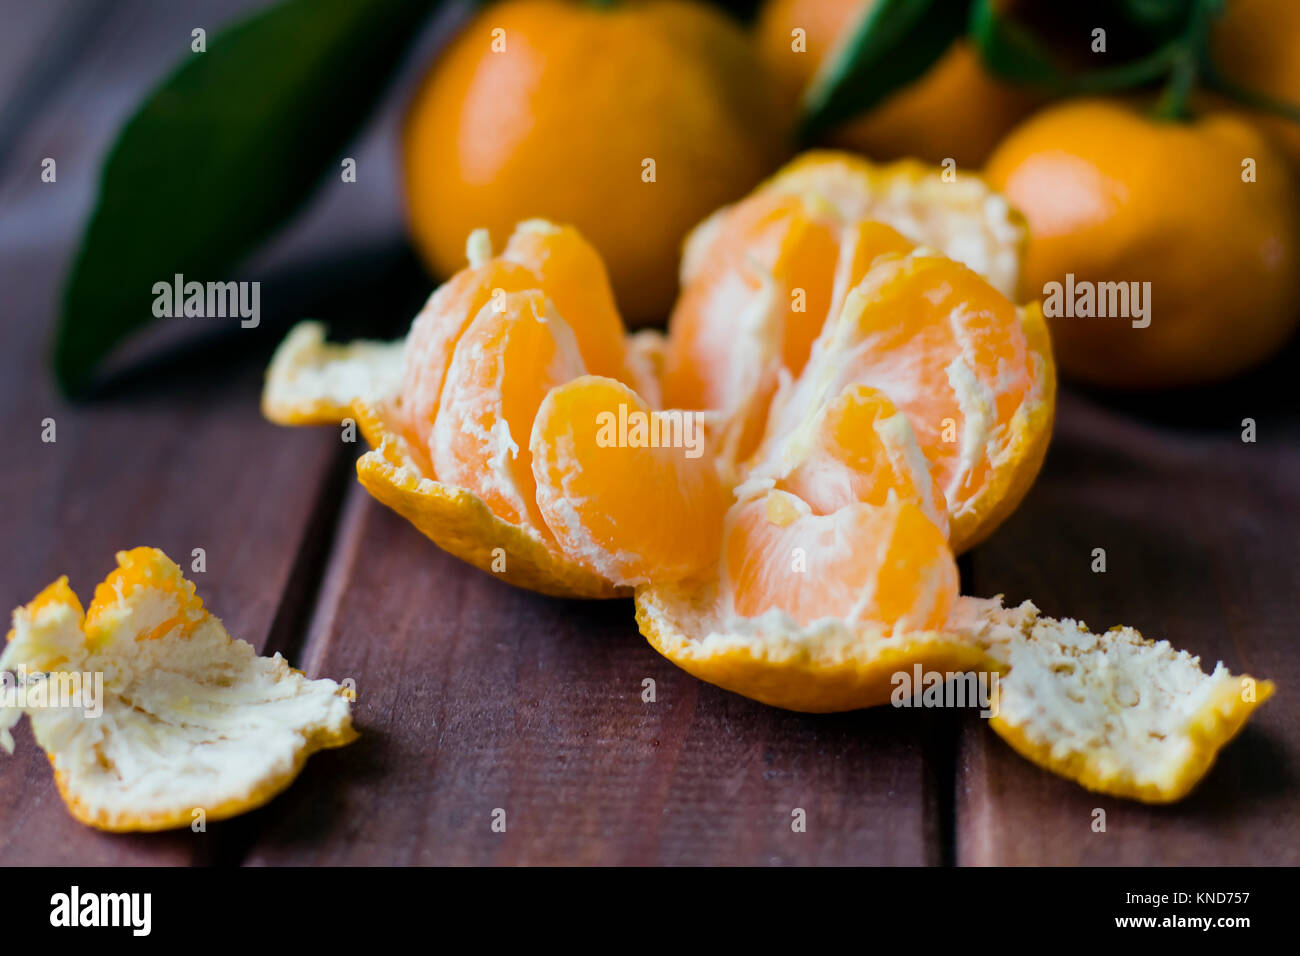 Fresh opened tangerine on wooden background - Stock Image